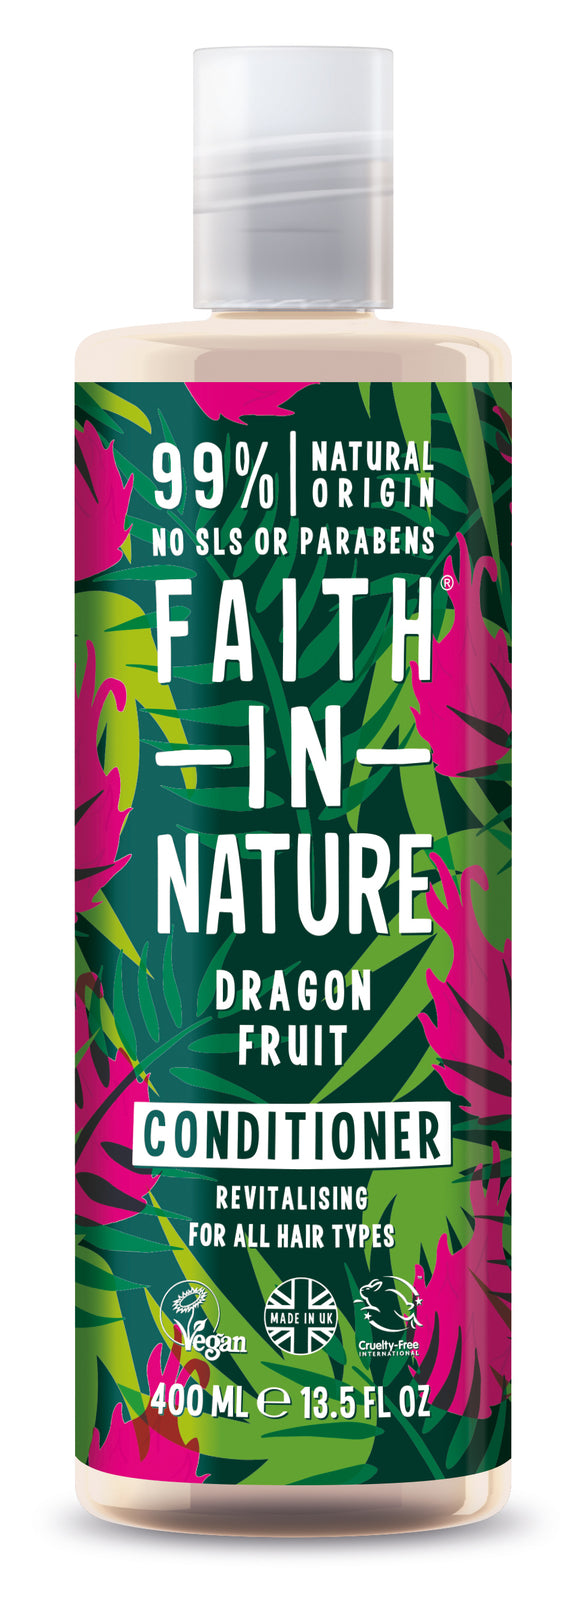 Faith In Nature: Dragon Fruit Conditioner for All Hair Types (400ml)